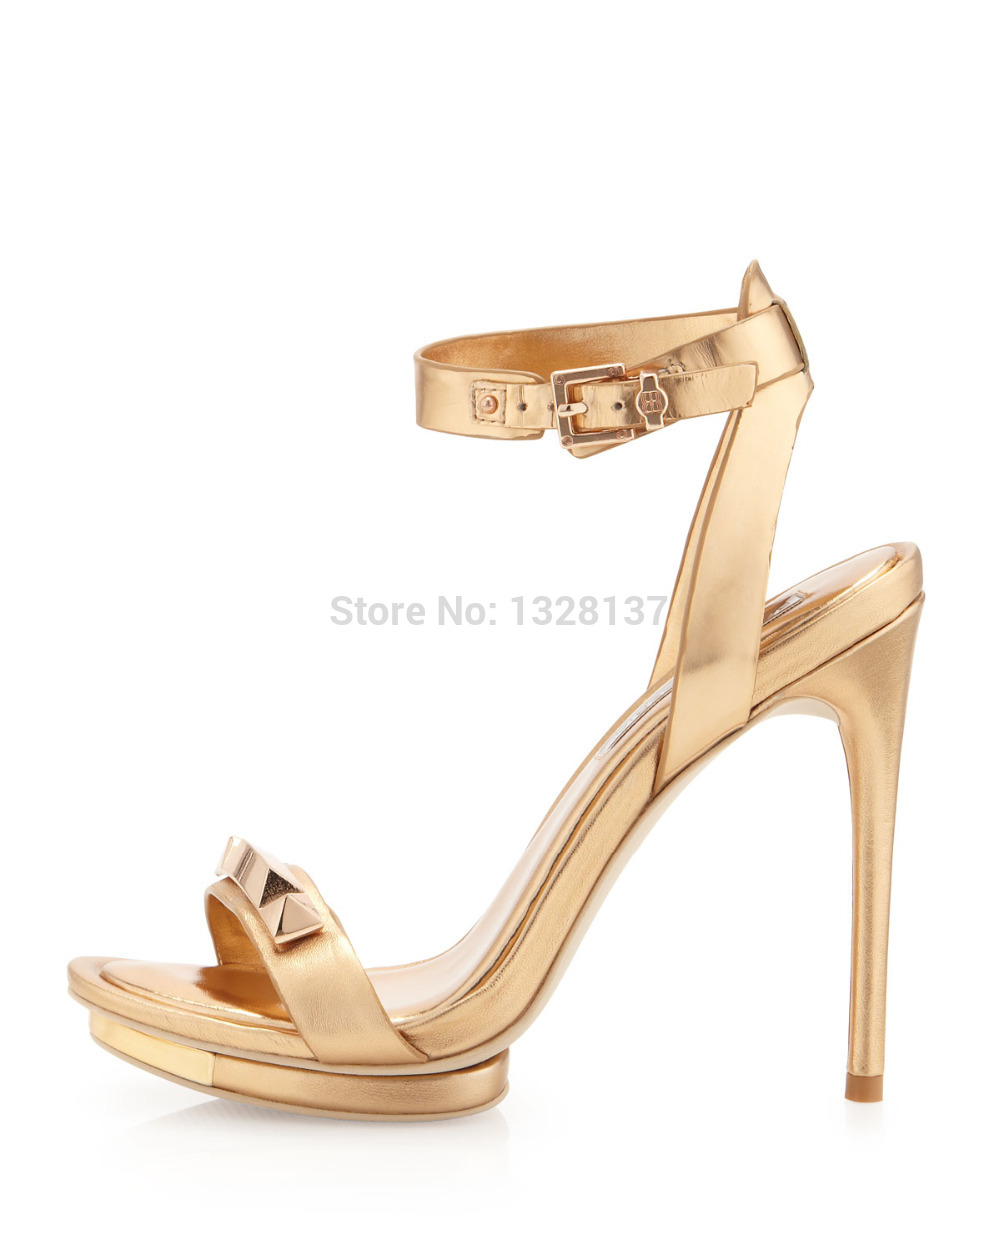 Compare Prices on Gold Strappy Platform Heels- Online Shopping/Buy ...